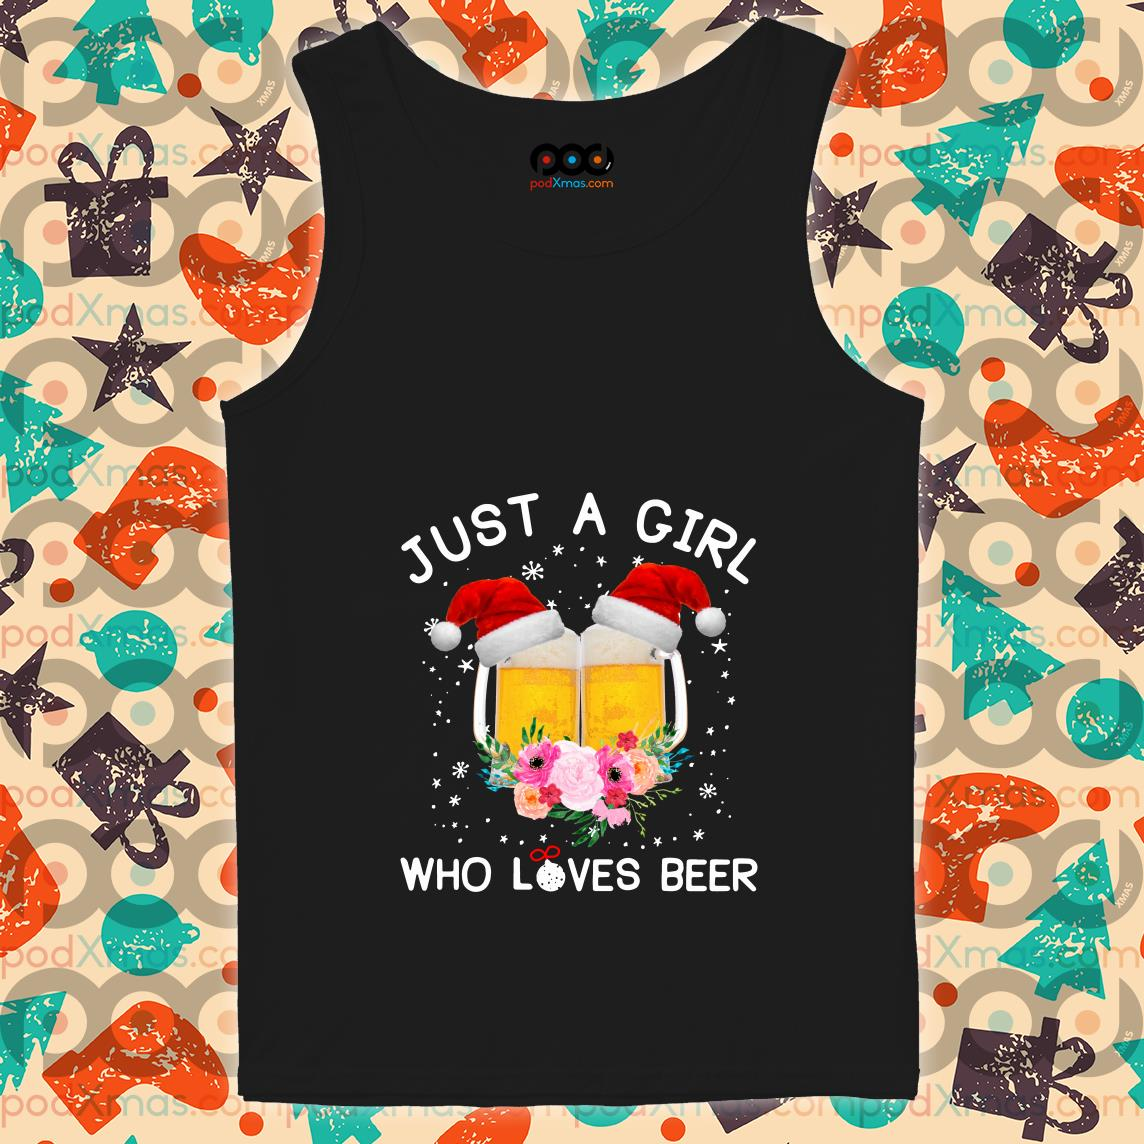 Just a girl who loves beer Christmas tank top